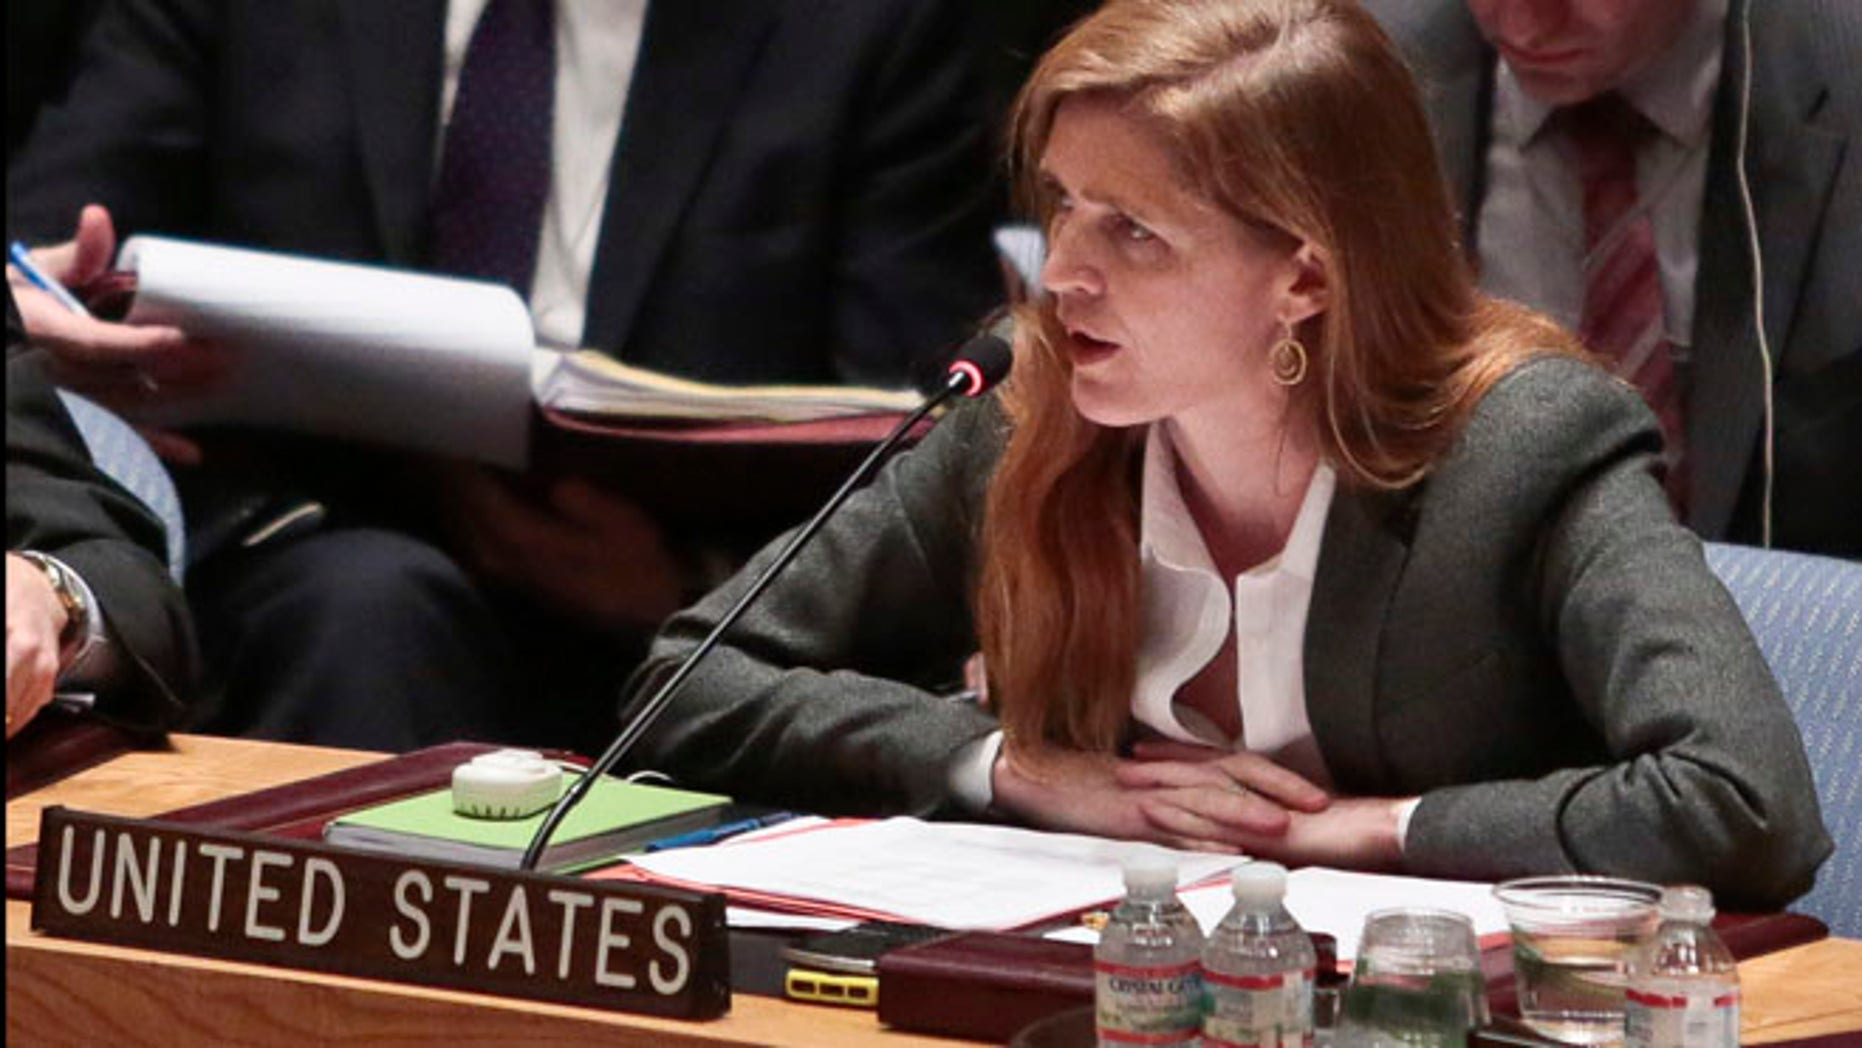 March 3, 2014: U.S. Ambassador to the United Nations Samantha Power speaks during a meeting of the U.N. Security Council on Ukraine.